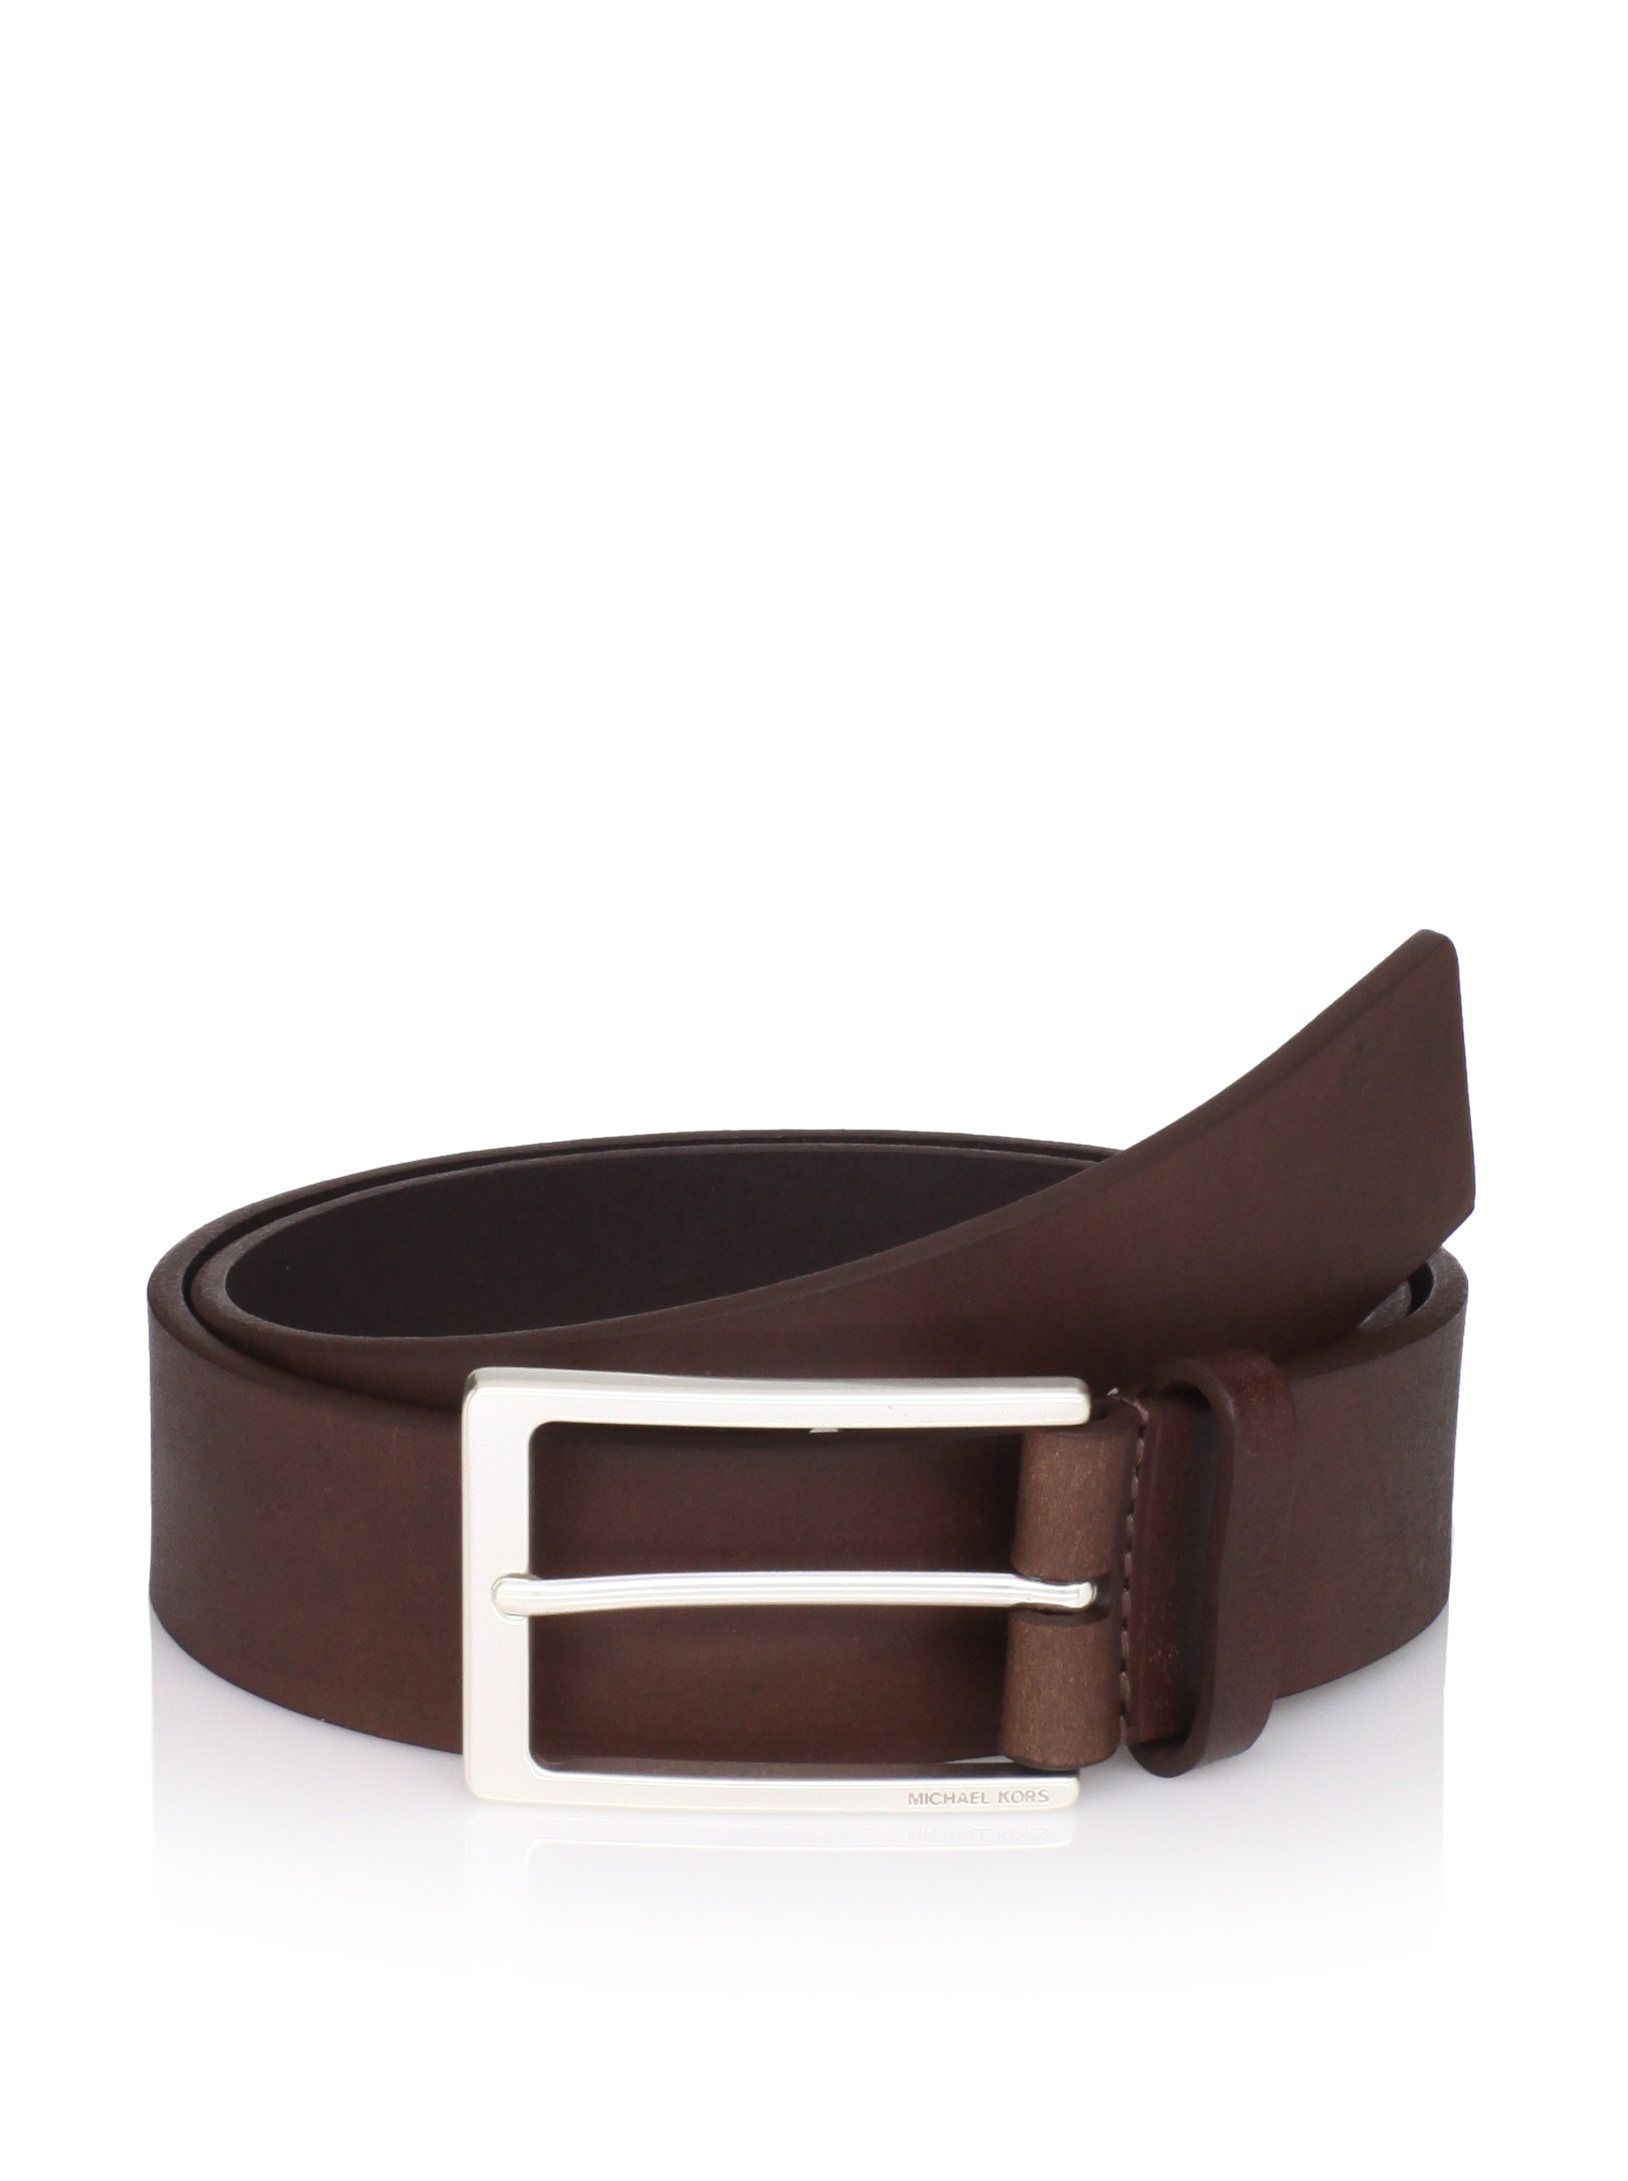 Michael Kors Men's Leather Belt (Chocolate)